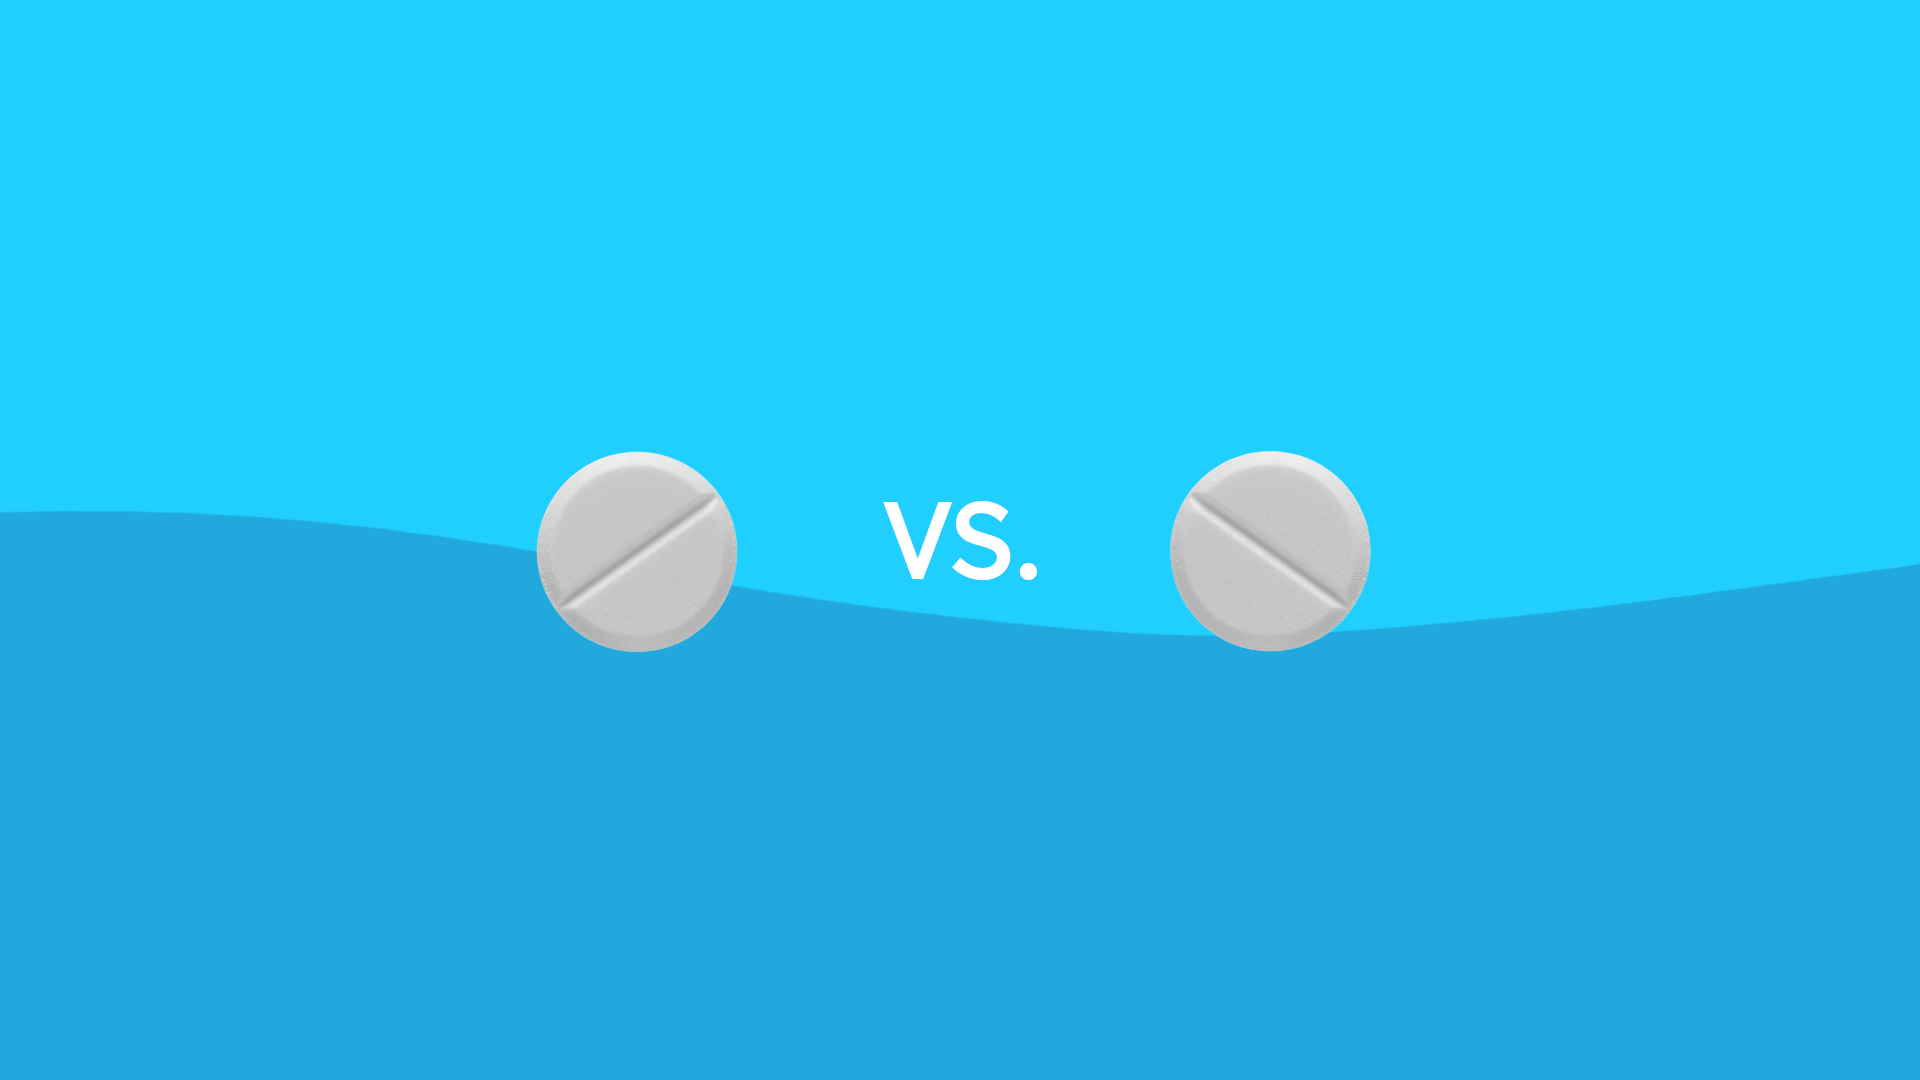 Brilinta vs. Plavix: Differences, similarities, and which is better for you